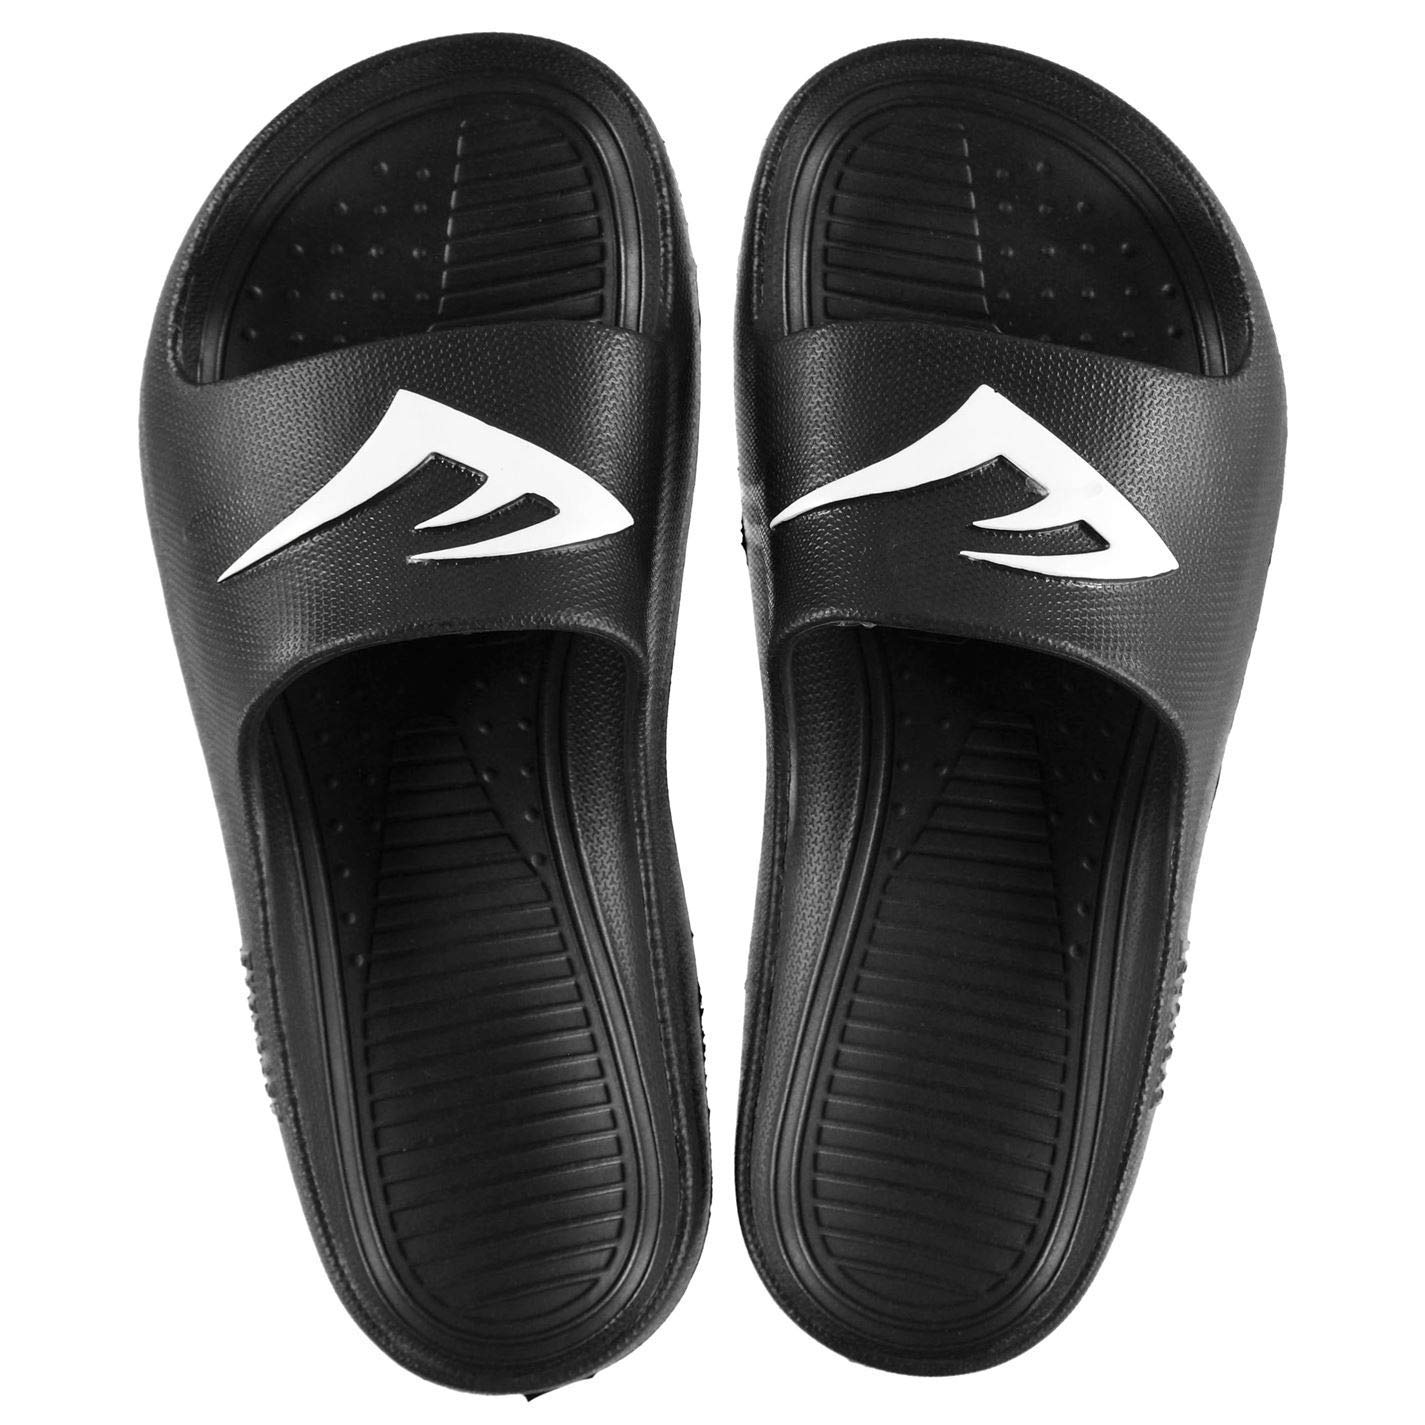 6ce58498ef875e Get Quotations · Everlast Kids Sliders Pool Shoes Slip On Comfortable Fit